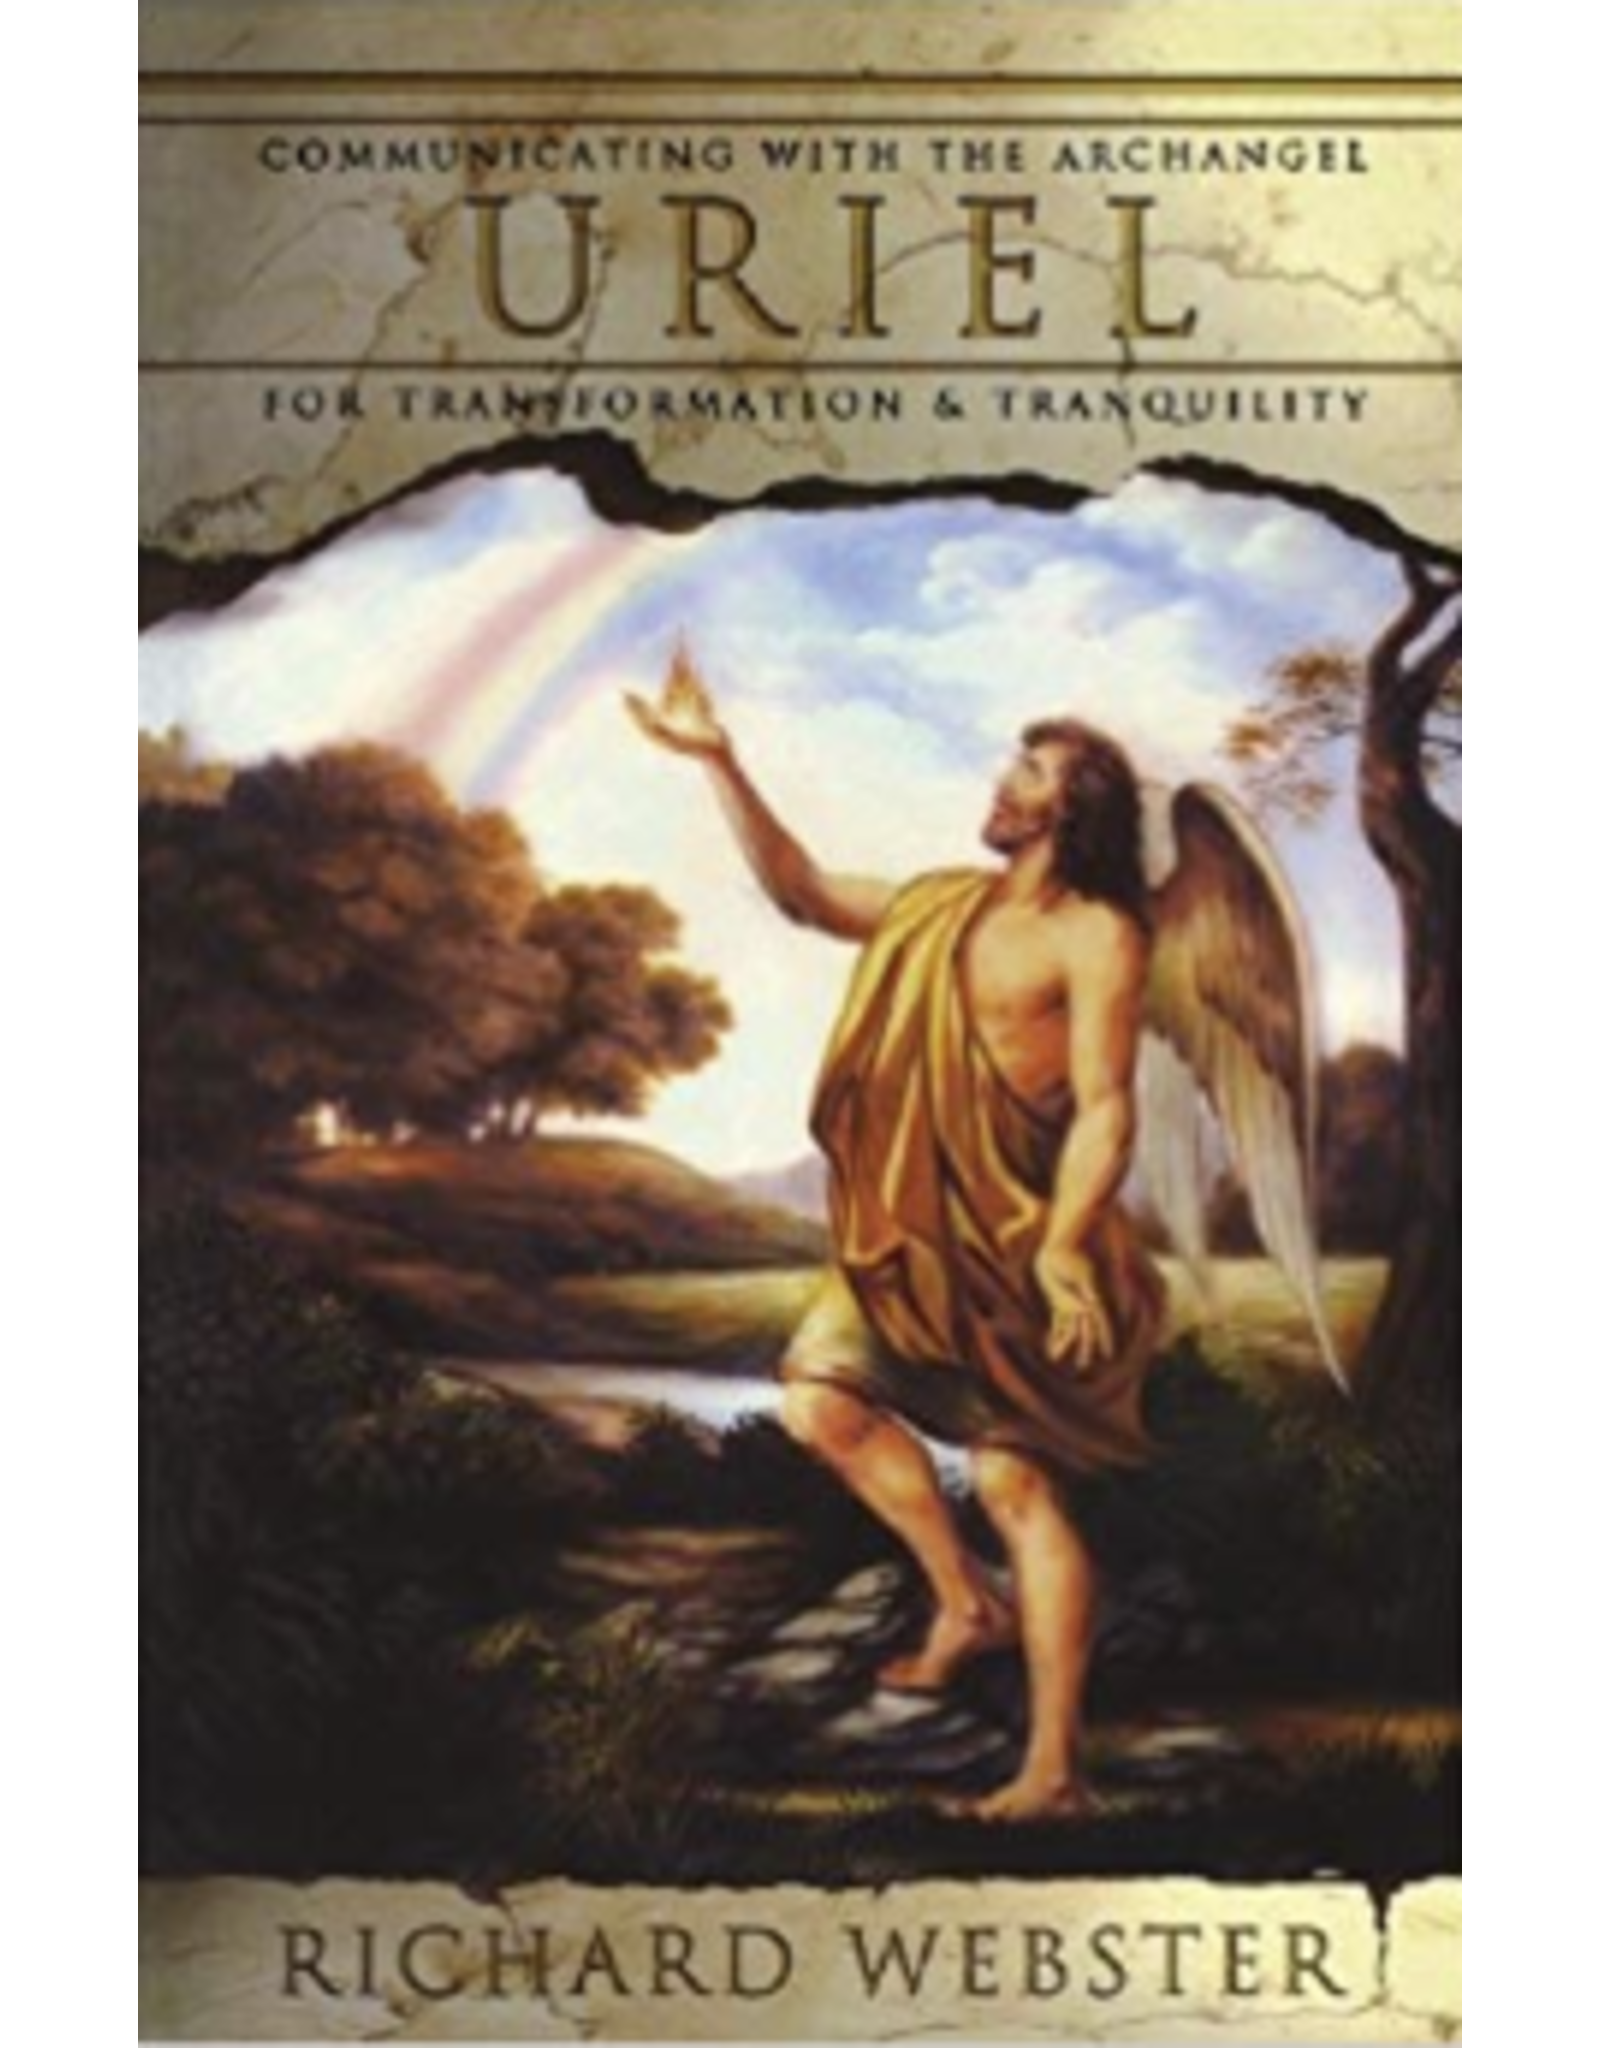 Communicating with the Archangel Uriel